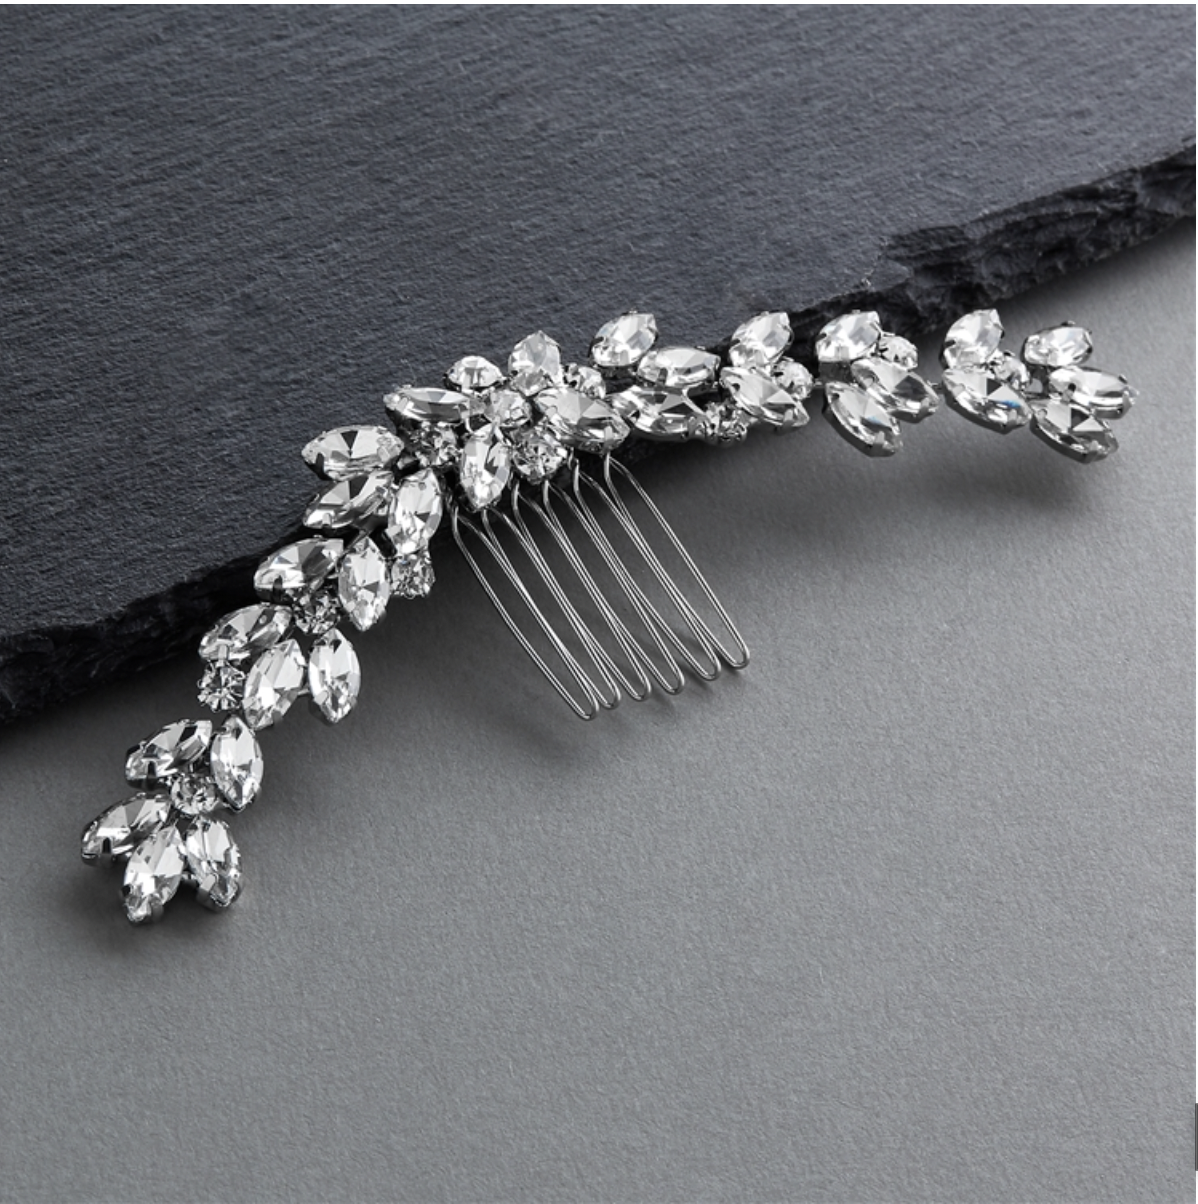 Hair Comb with Curved Marquis Crystal Design